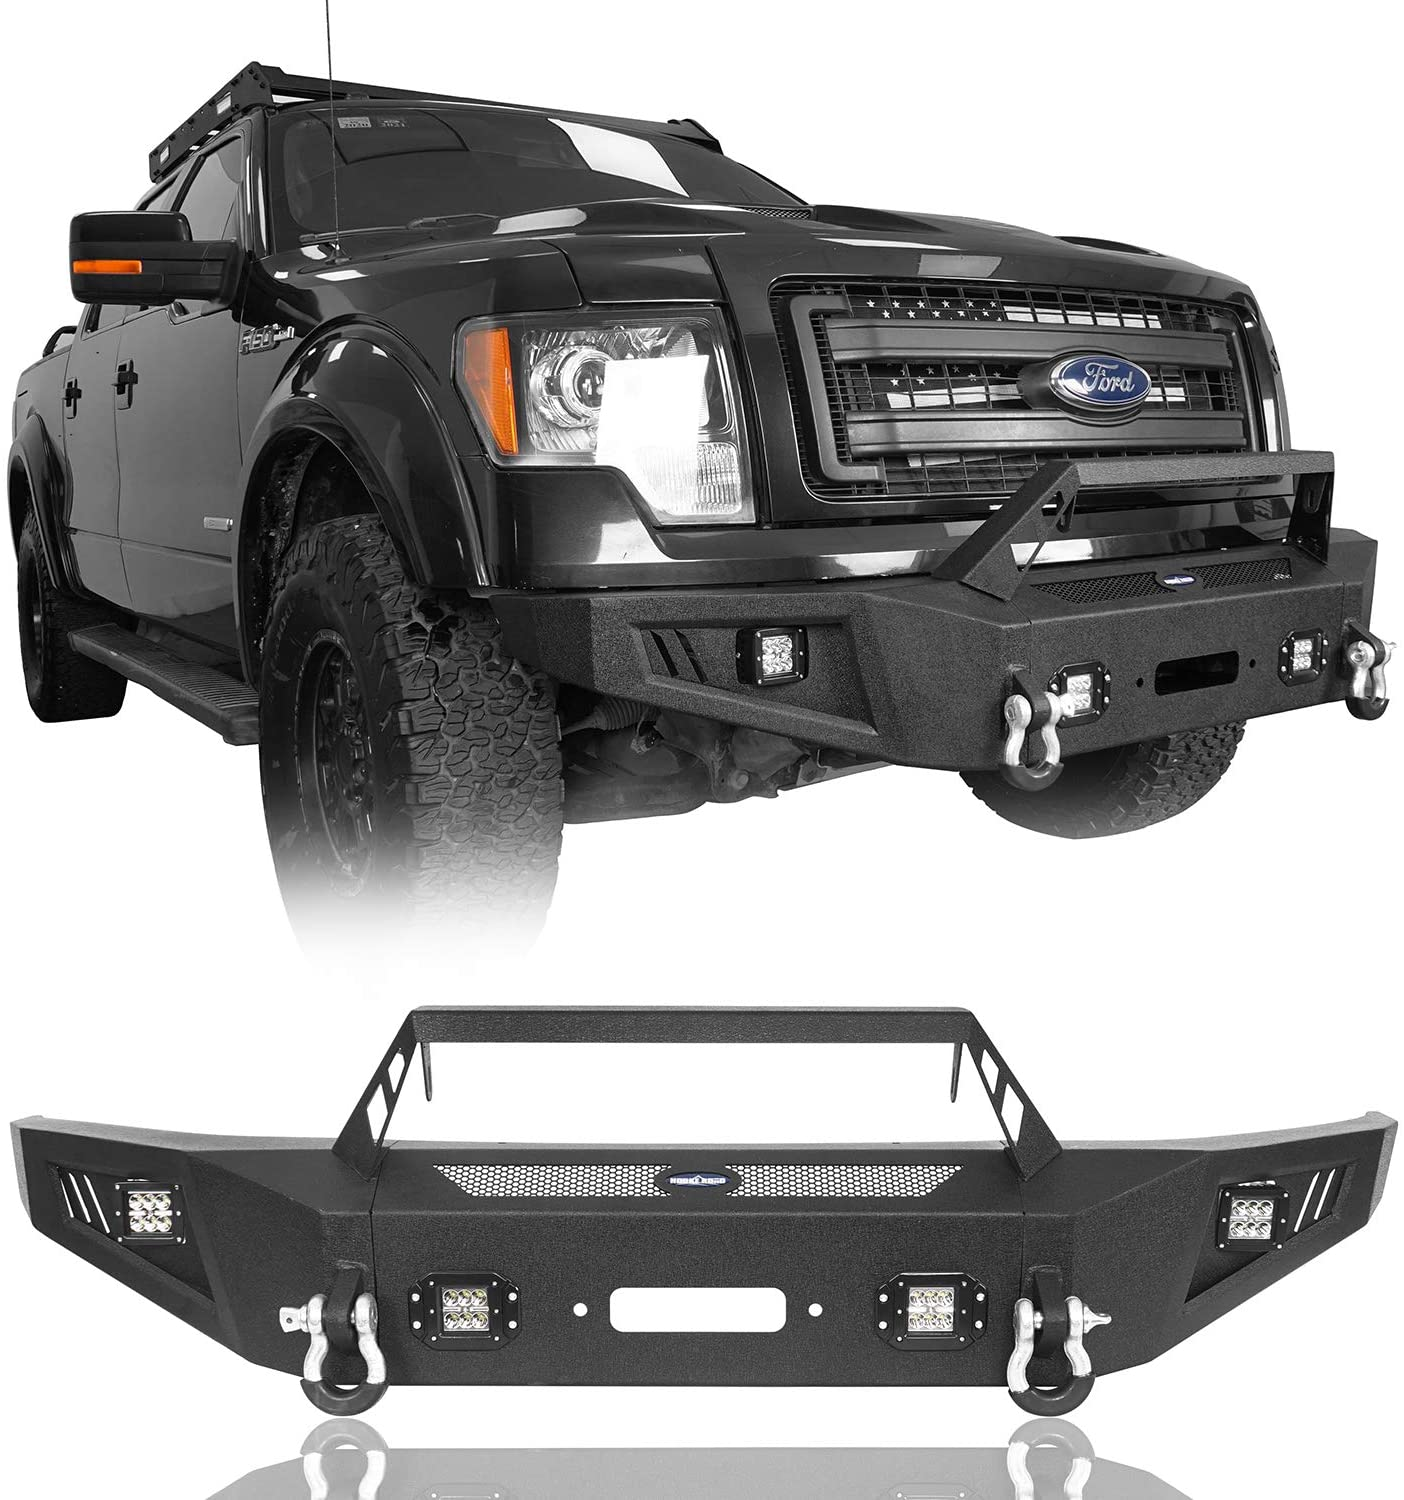 Amazon Com Hooke Road F150 Front Bumper With Winch Plate Lights Compatible With Ford F 150 2009 2010 2011 2012 2013 2014 Excluding Raptor Automotive